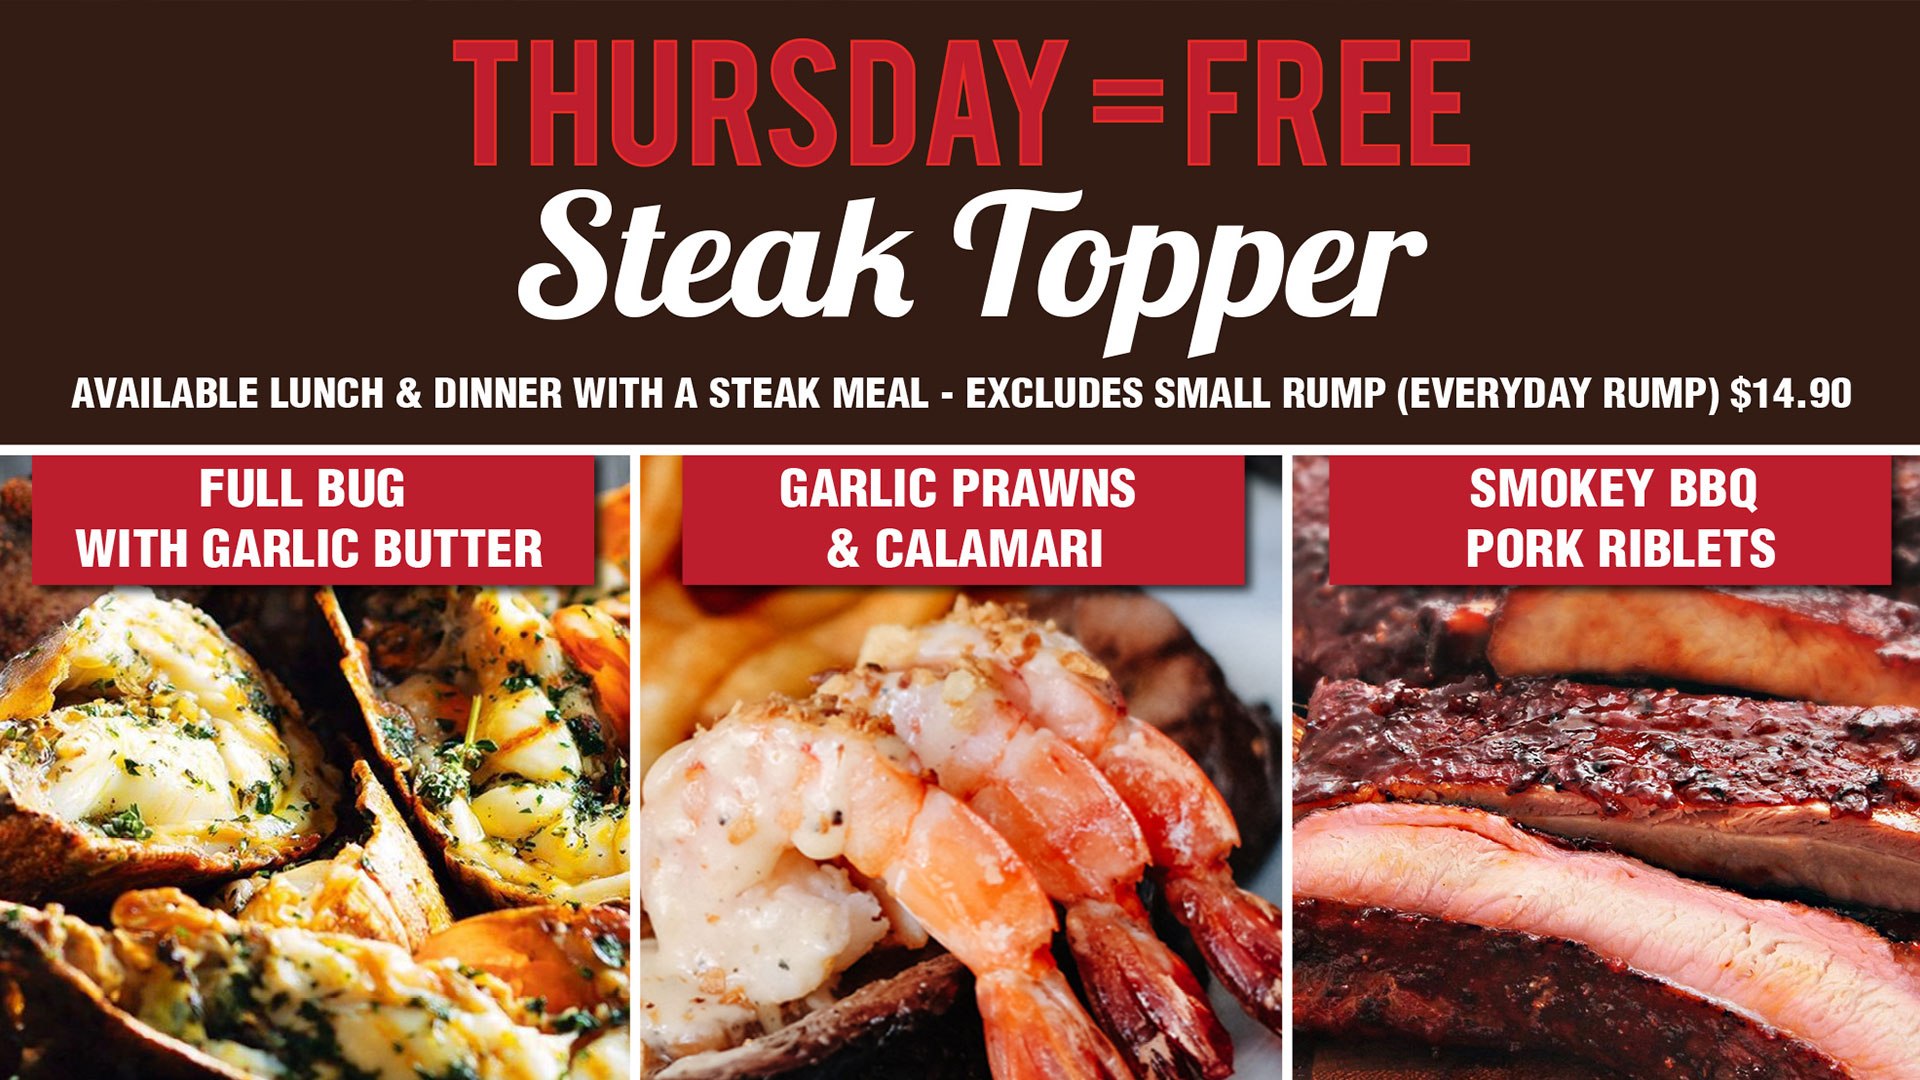 Free Steak Topper Every Thursday